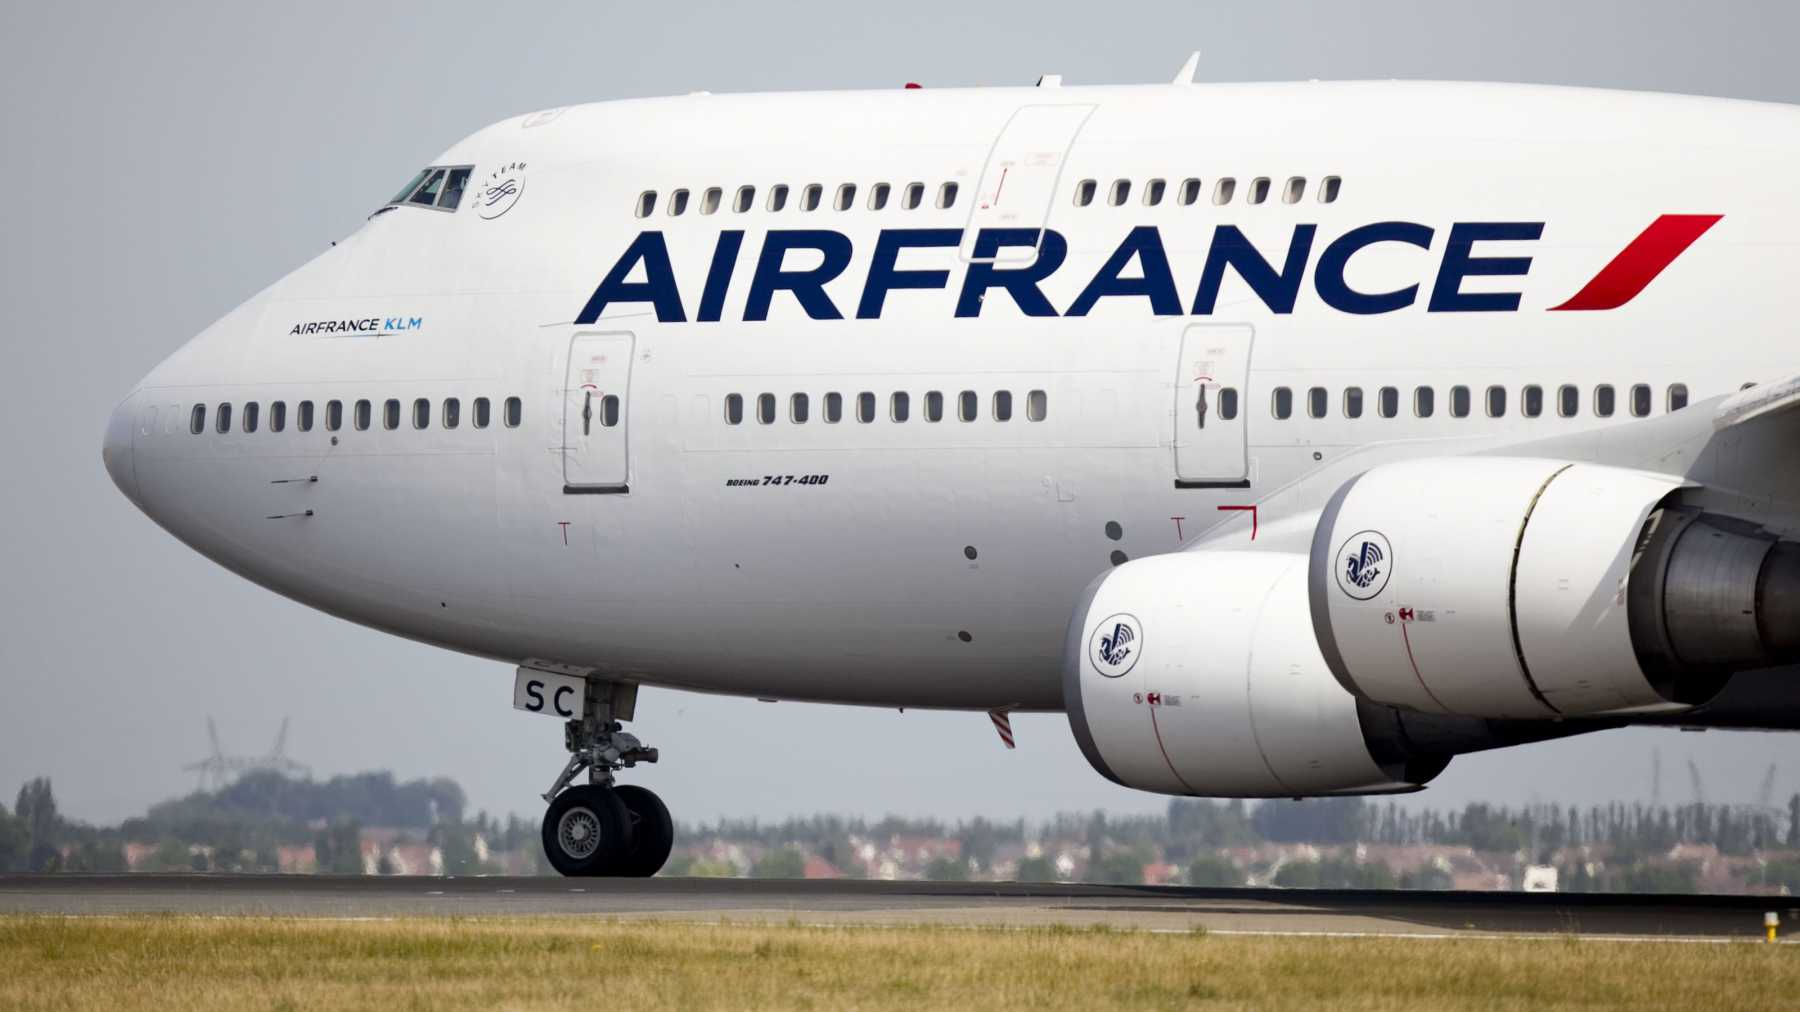 Woman Hides Child In Carry-On On Air France Flight | Air France